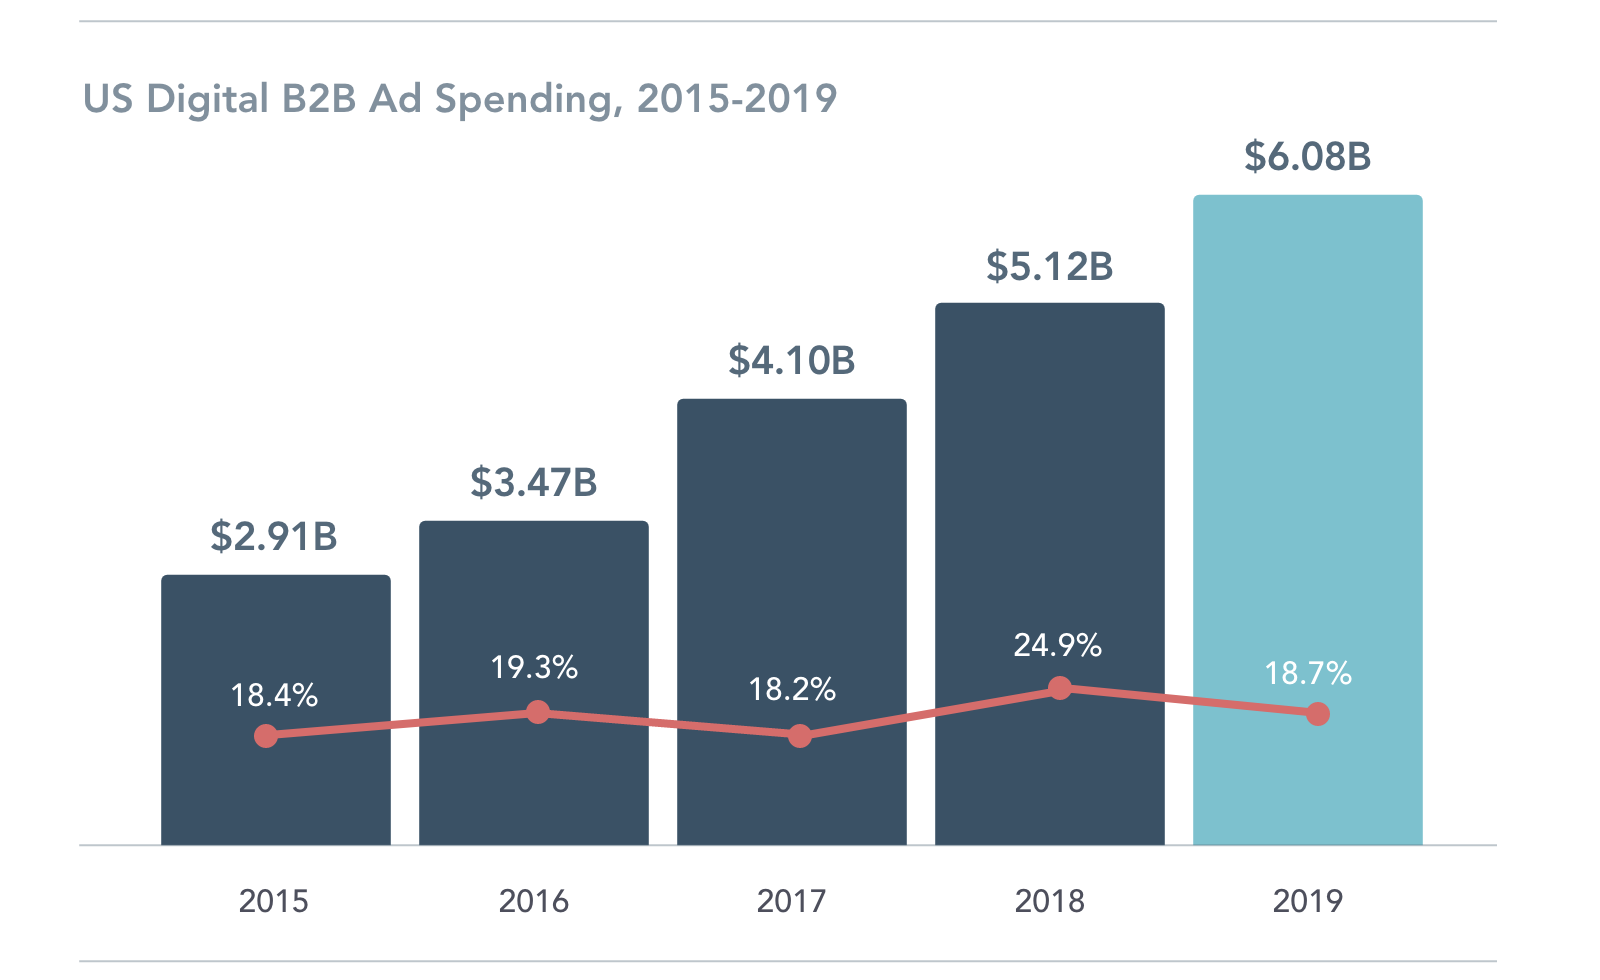 US B2B Digital Ad Spending 2015-2019